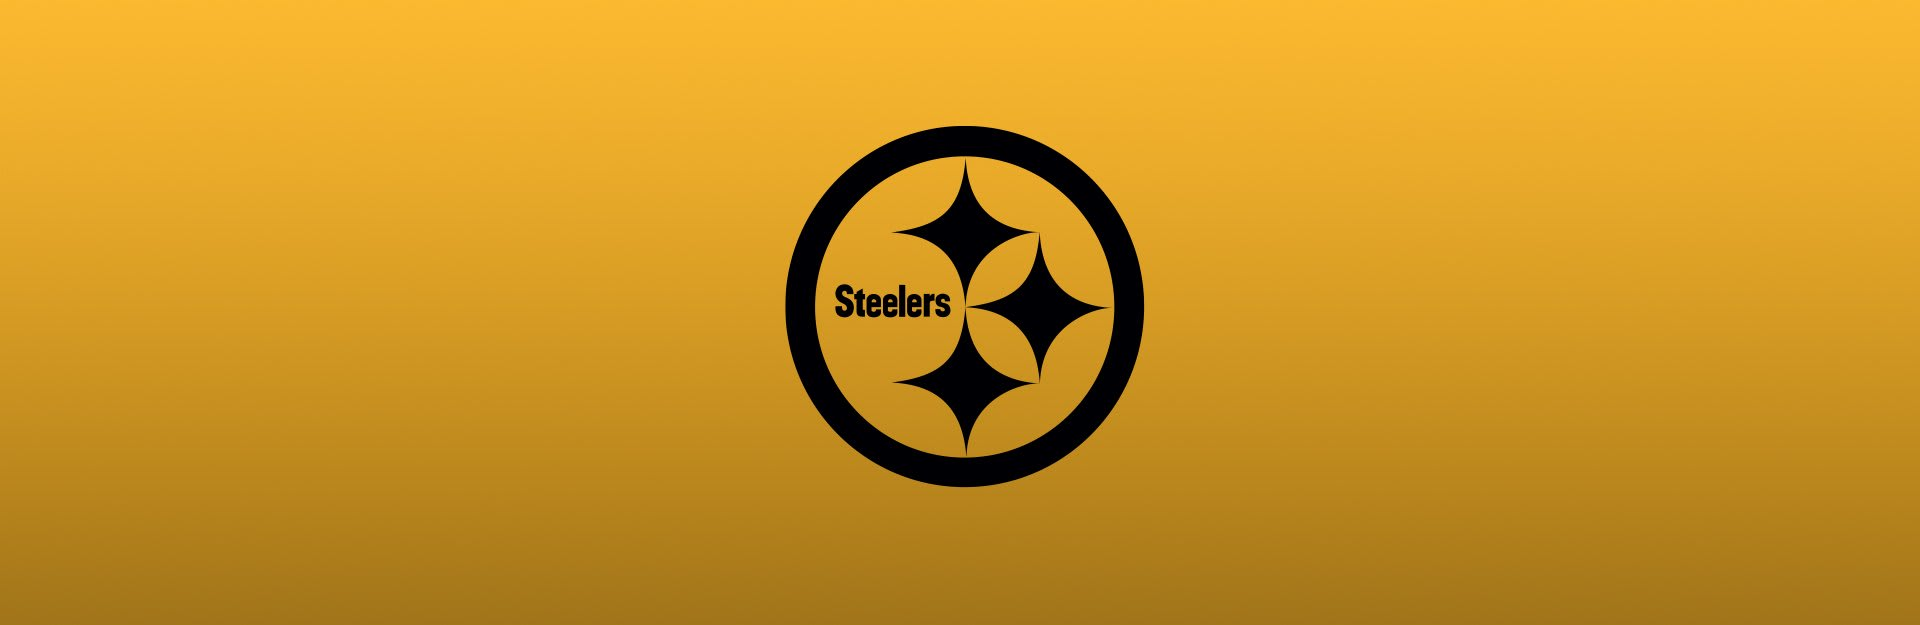 Pittsburgh Steelers logo overlaid on yellow-gold background